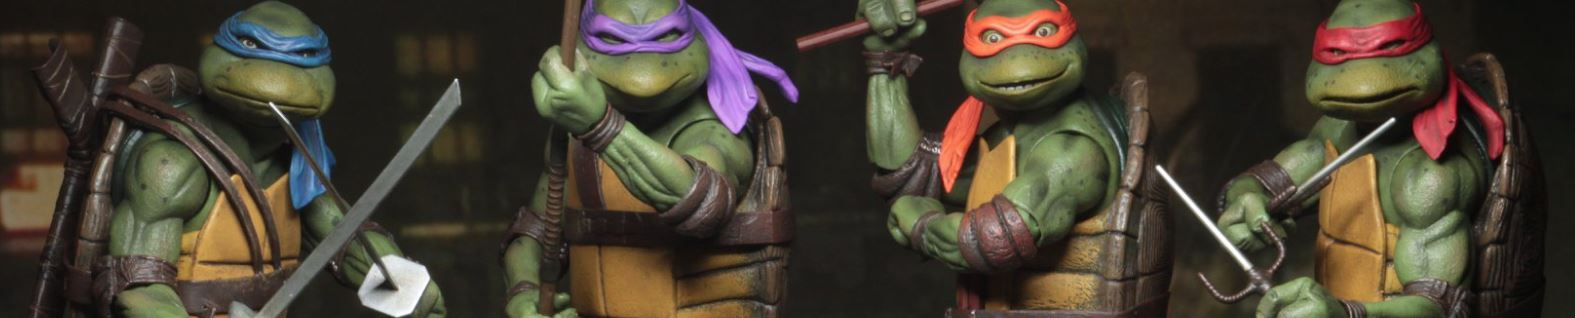 Action Figure Insider Neca Announce 90s Movie Tmnt Figures For